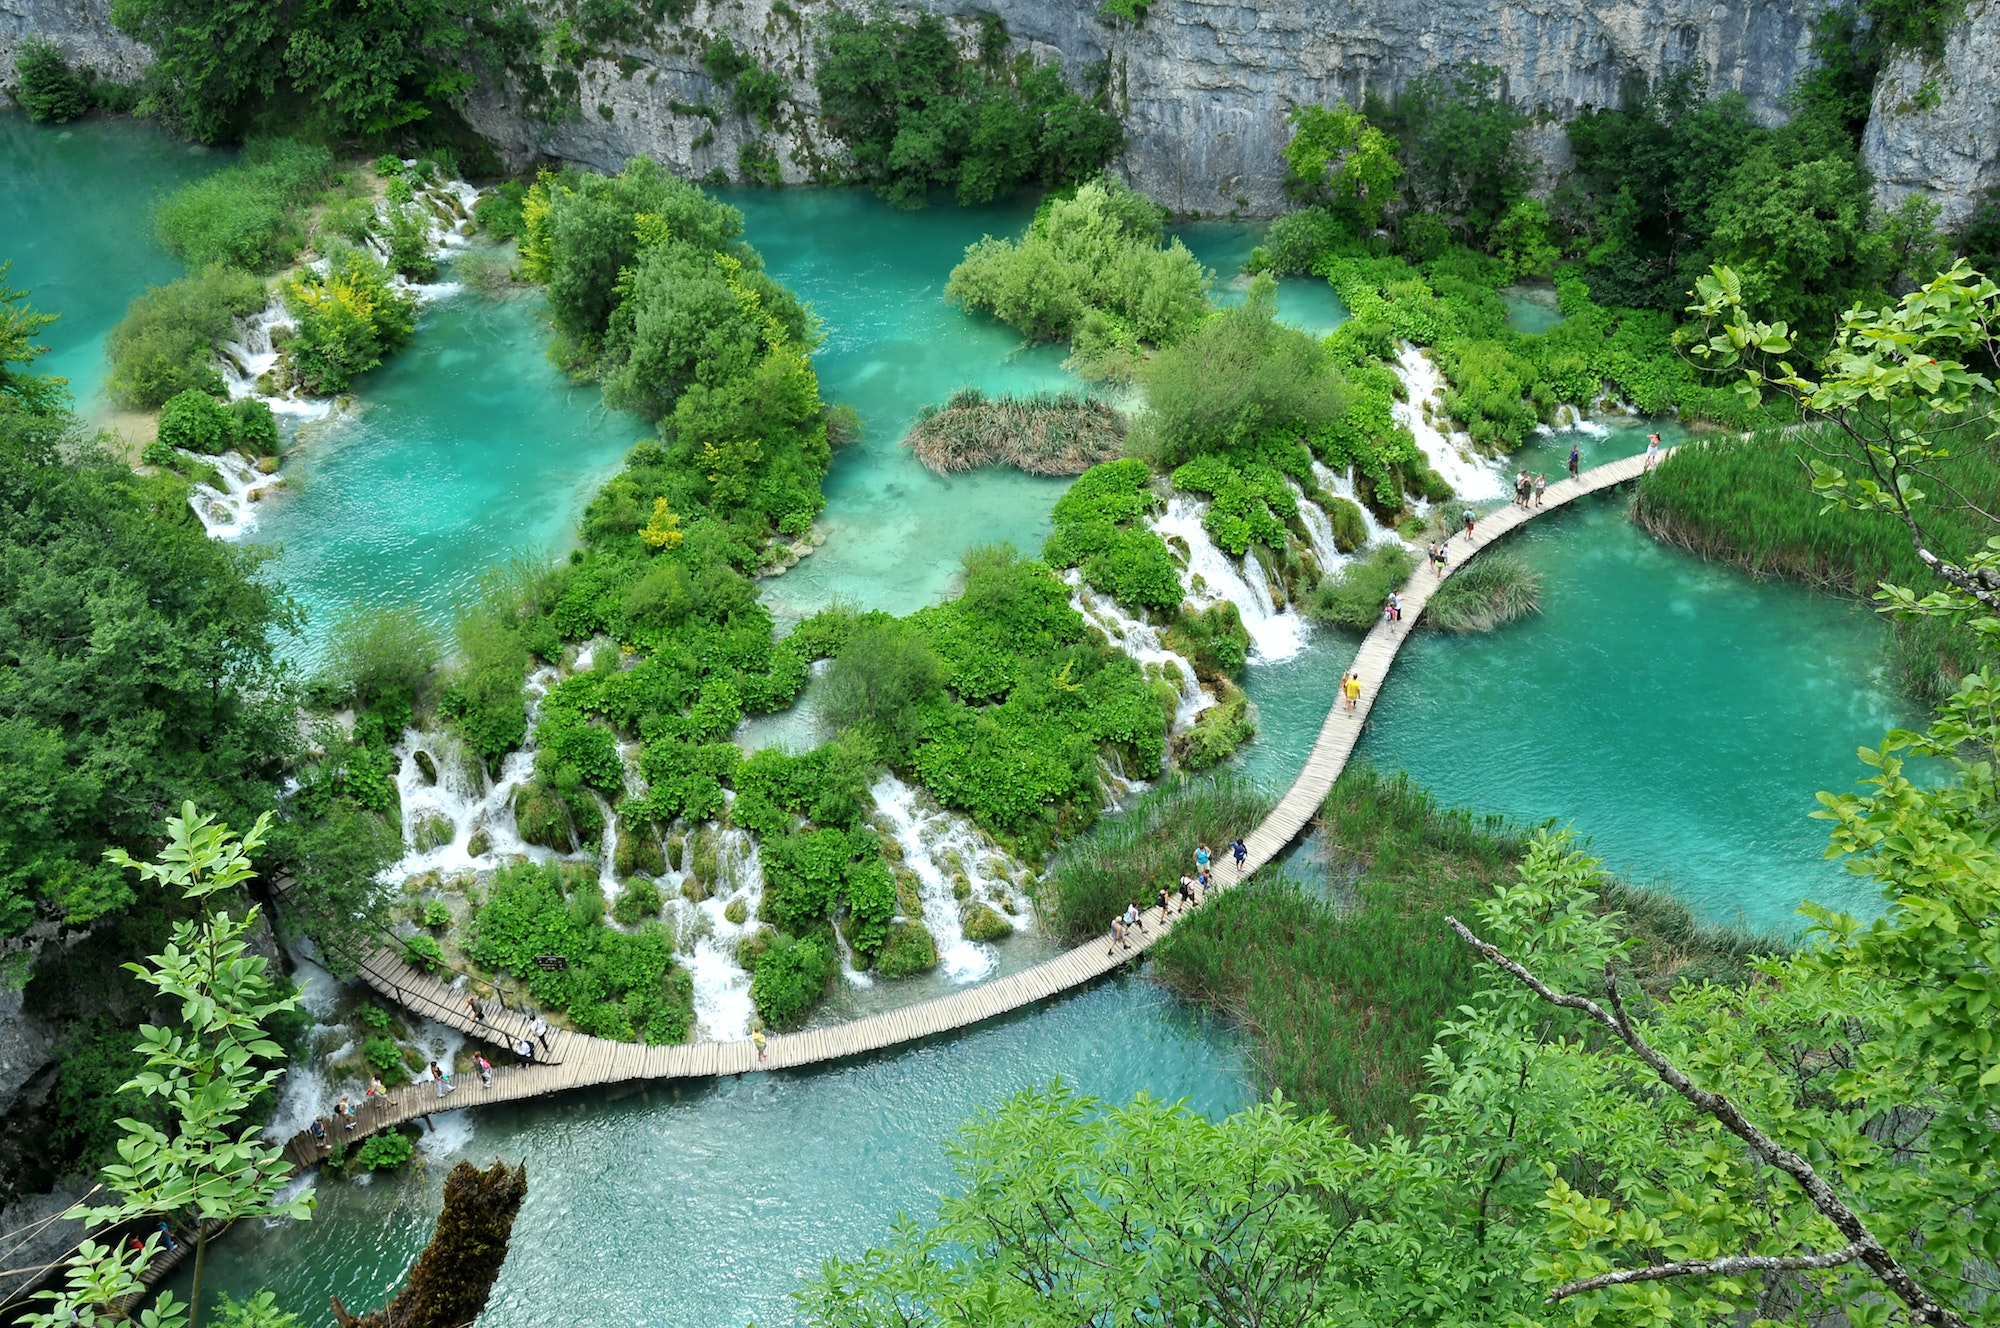 Plitviče Lakes National Park consists of 16 natural lakes joined by waterfalls that extend into limestone canyons.